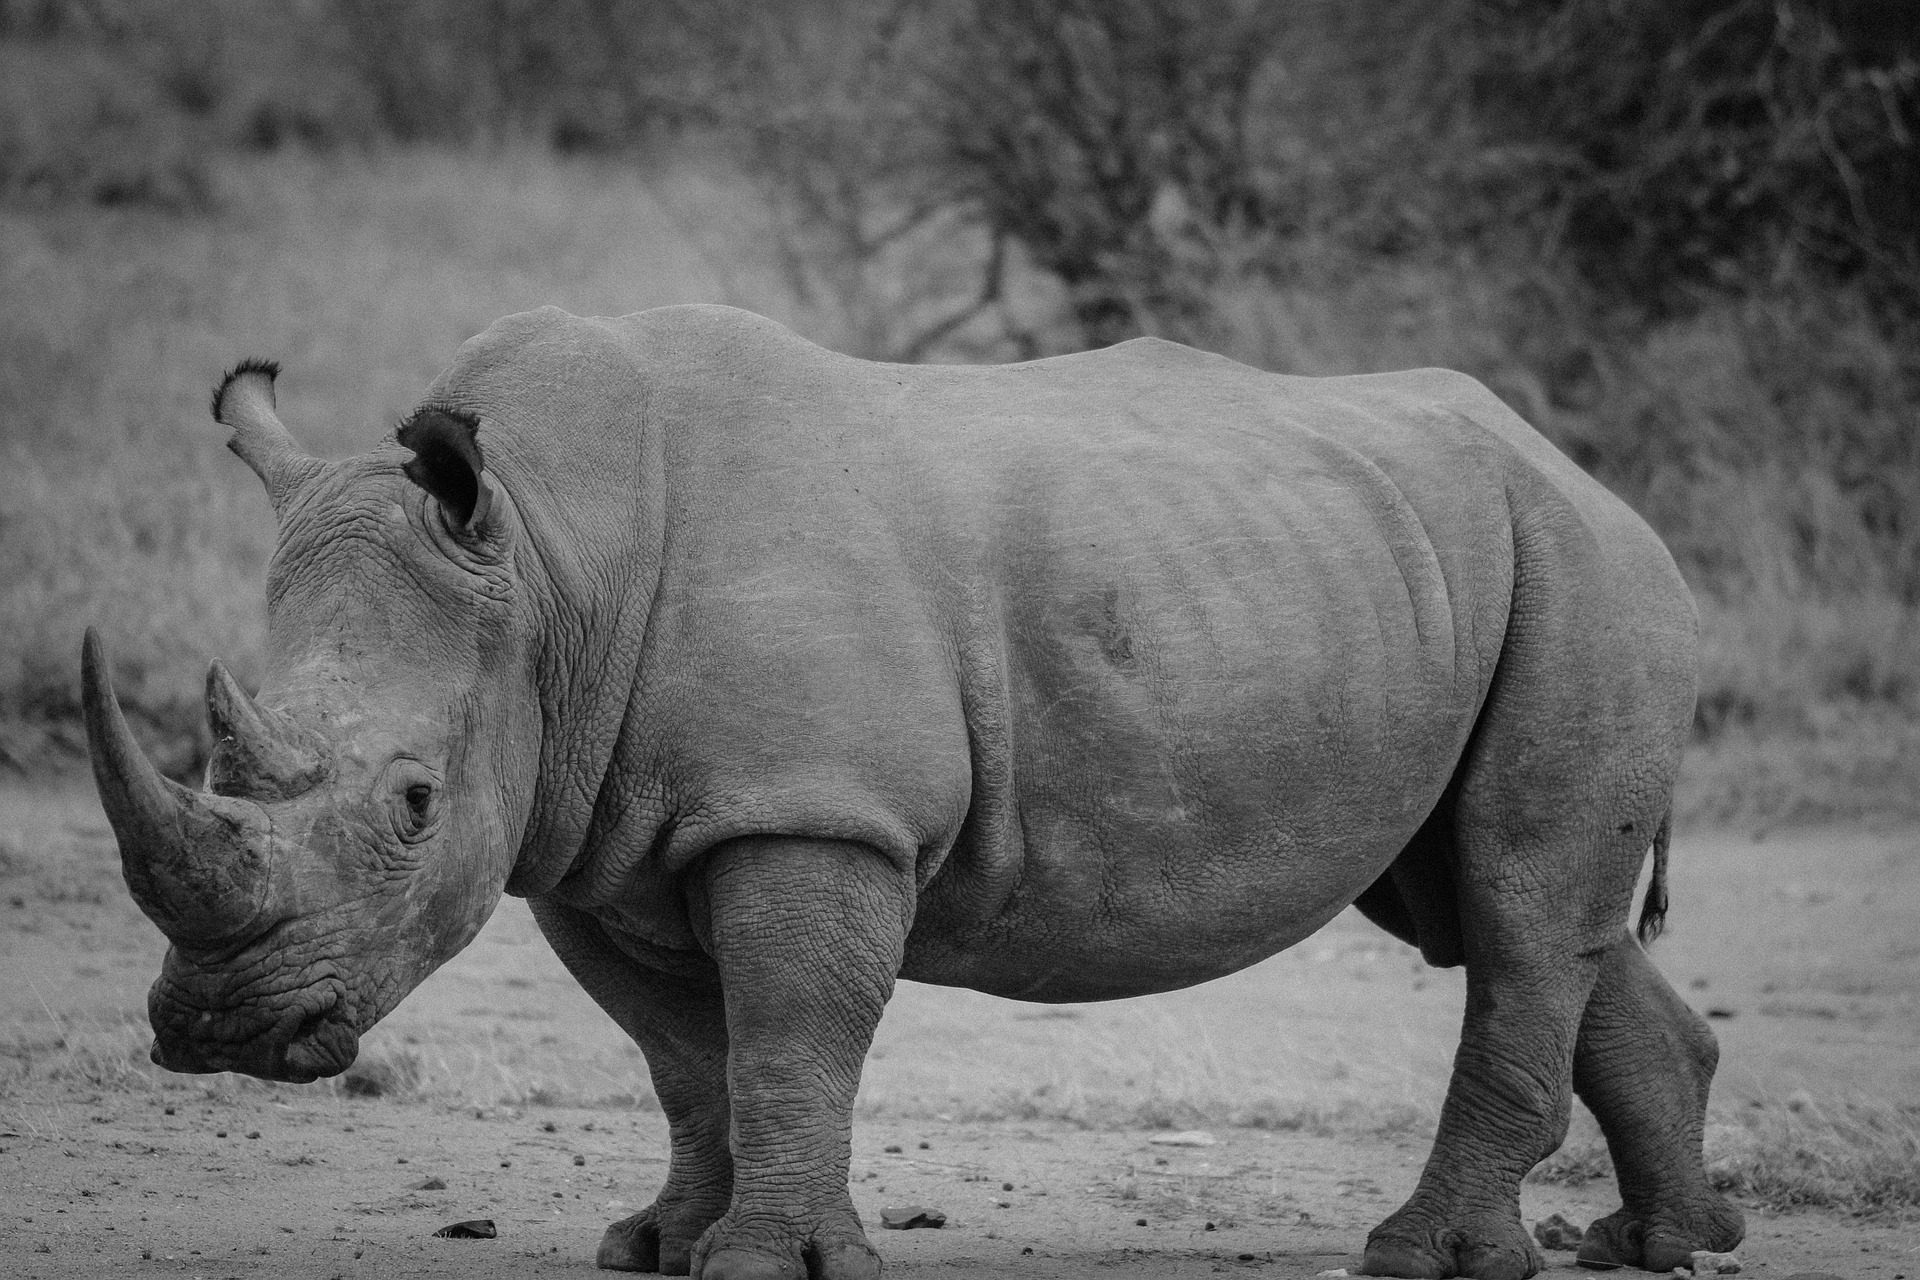 Rhino Poachers Jailed For Kruger National Park Incursions